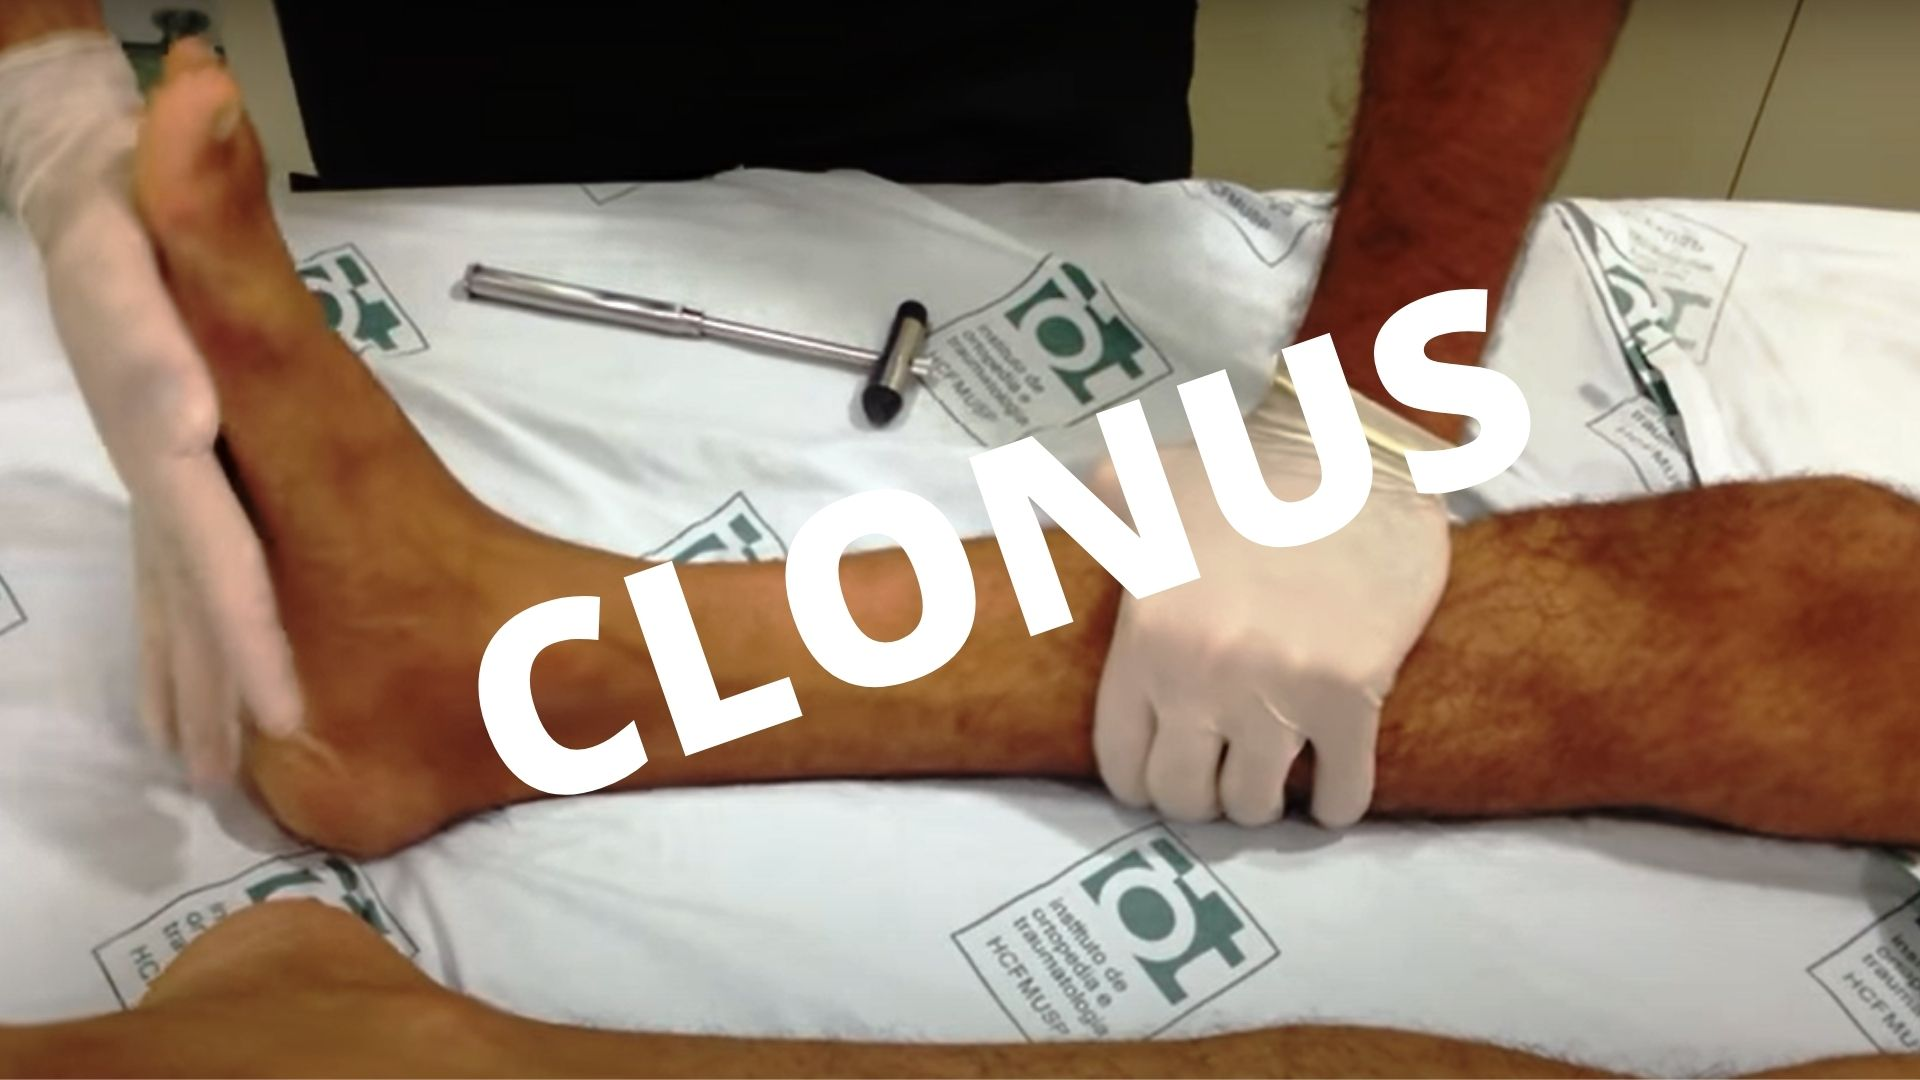 Clonus: Definition, Causes, Identify, Test, Treat And Stop